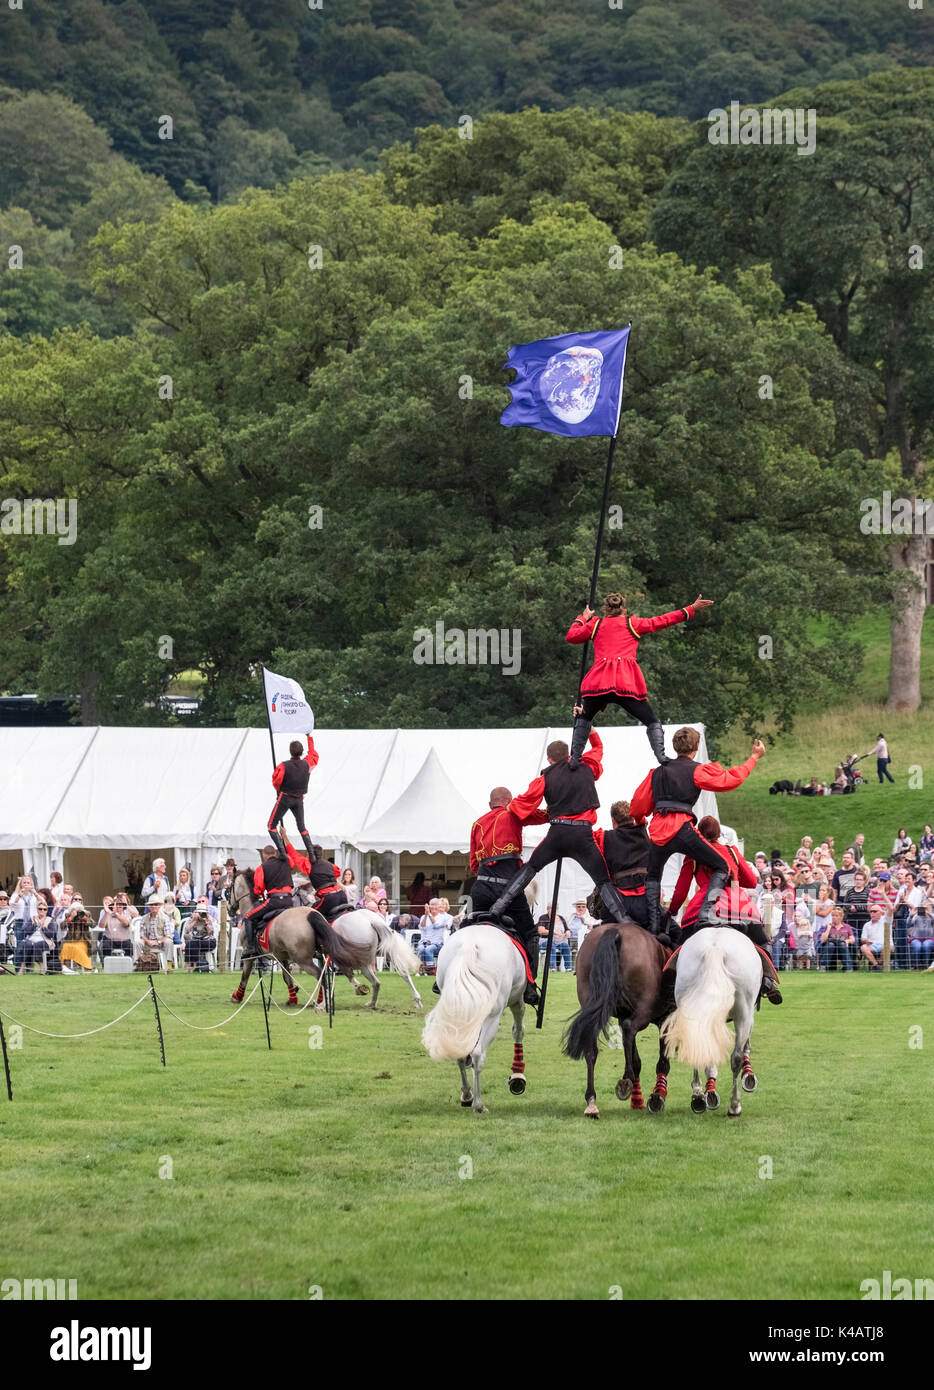 Cossack horse riding display at an English Country Fair event, Derbyshire, UK - Stock Image